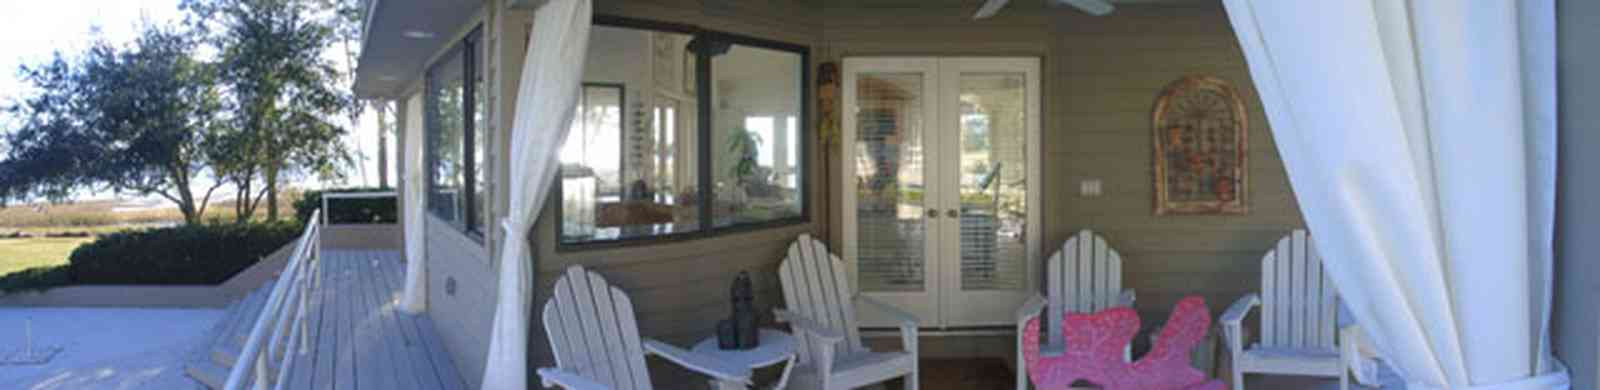 Gulf-Breeze:-Ceylon-Drive_07.jpg:  pool house, swimming pool, santa rosa sound, tiger point subdivision